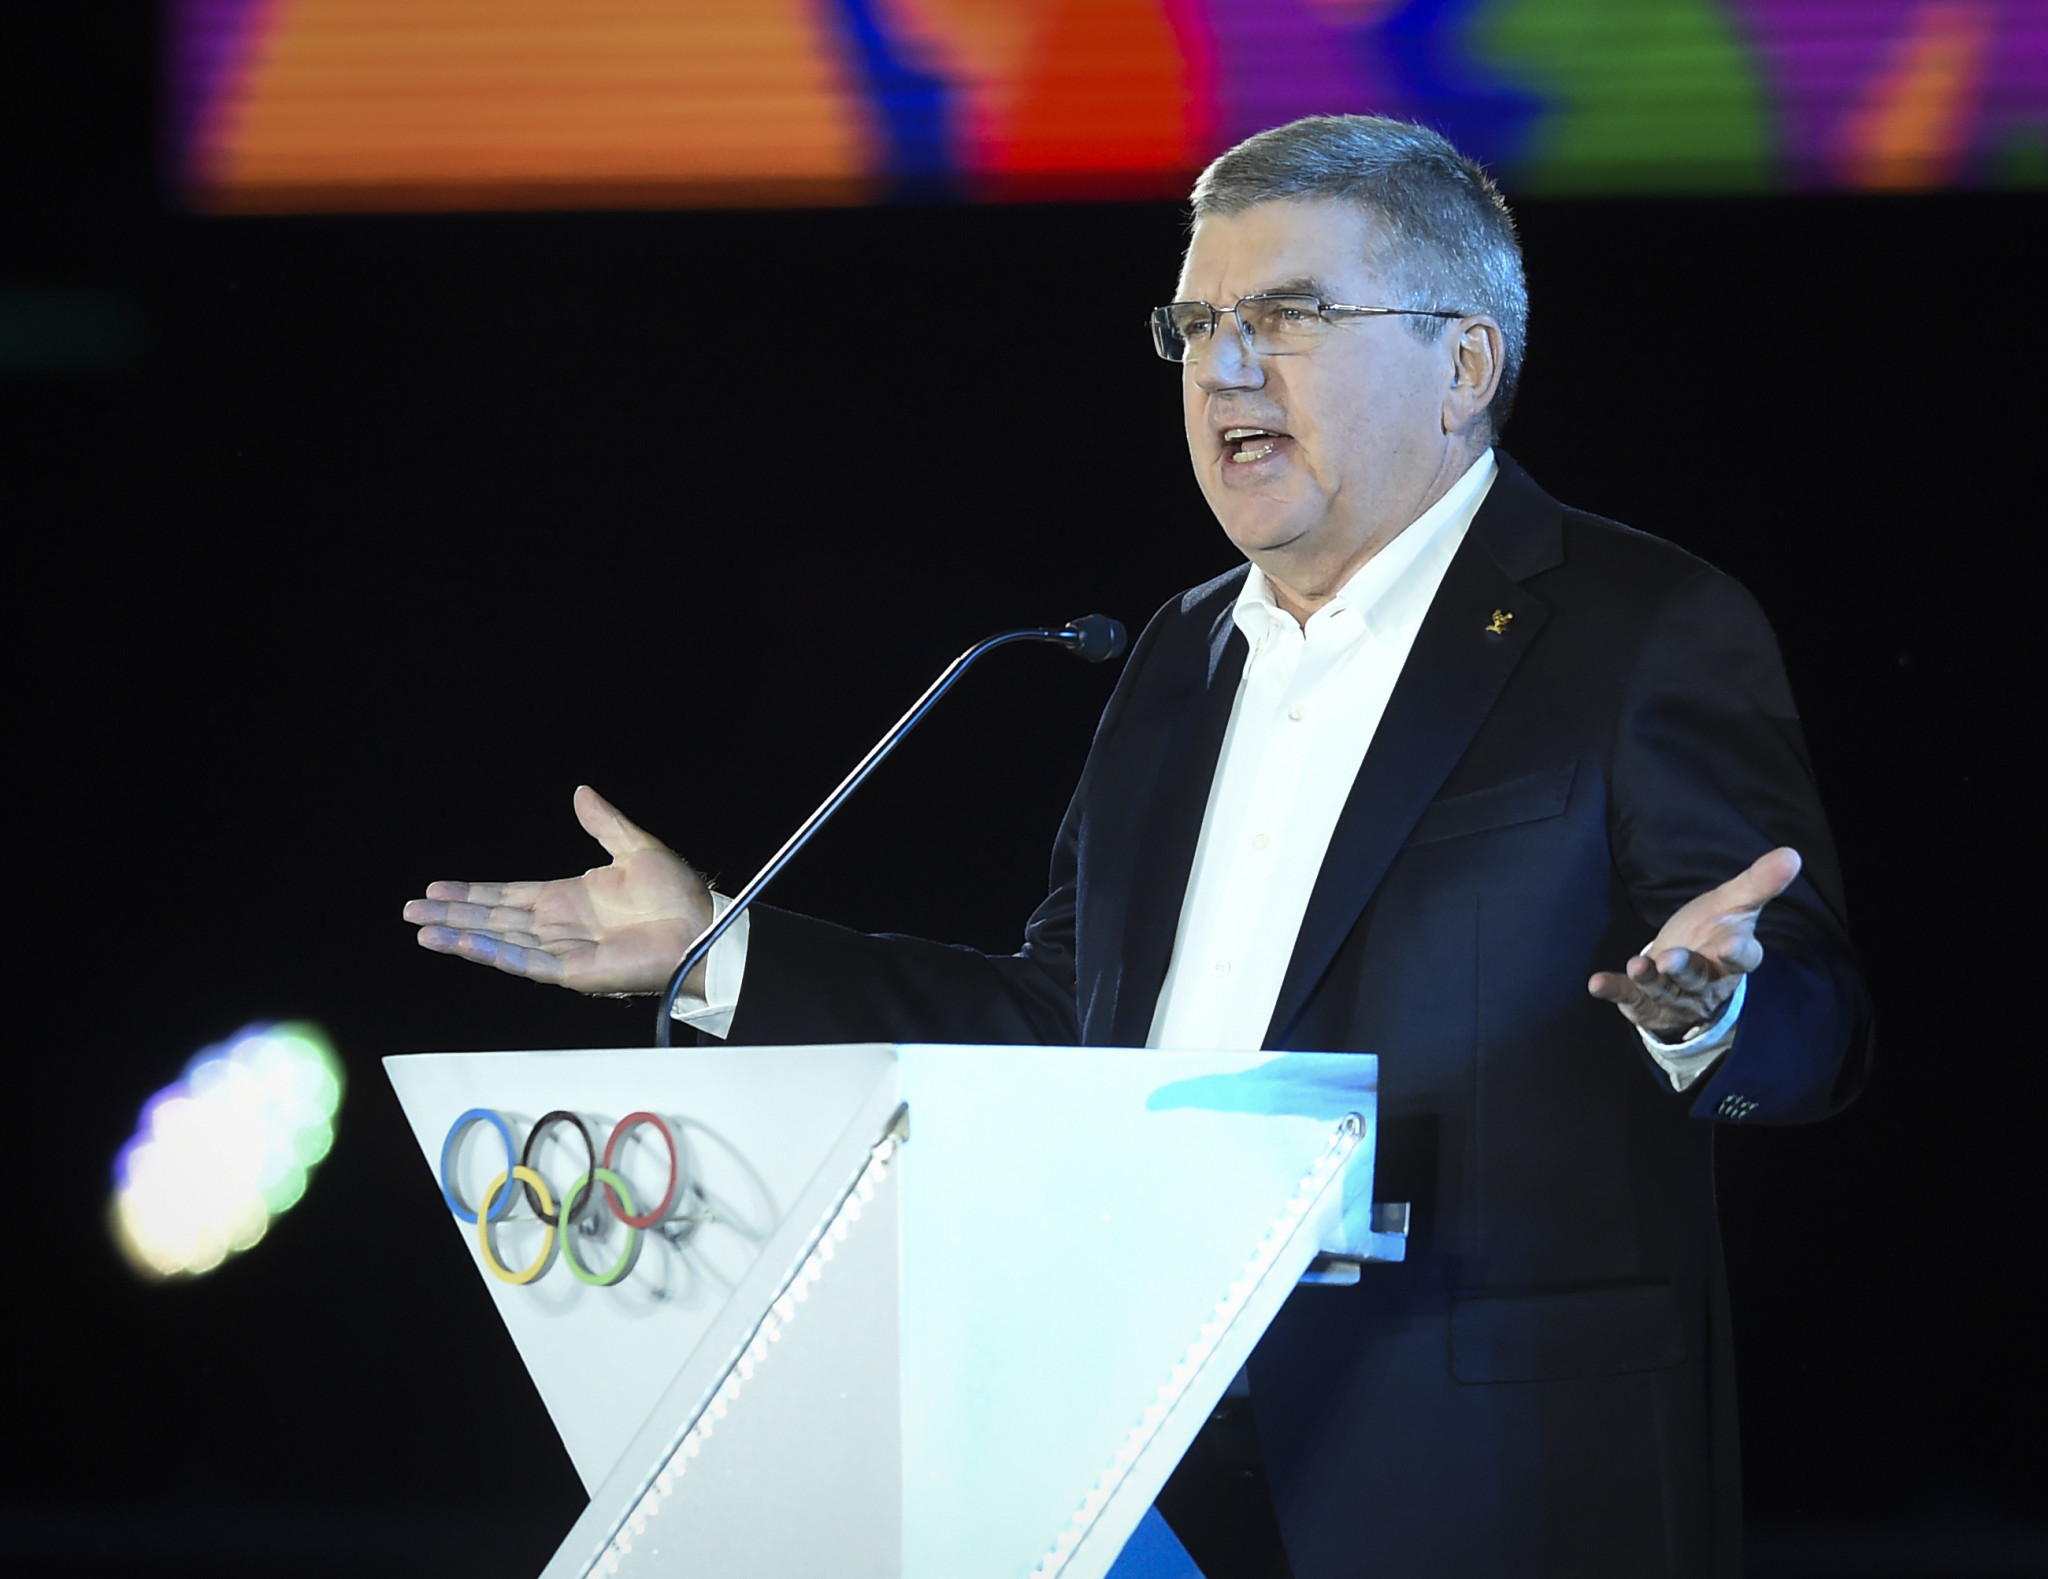 IOC President Thomas Bach will preside over the Session ©Getty Images